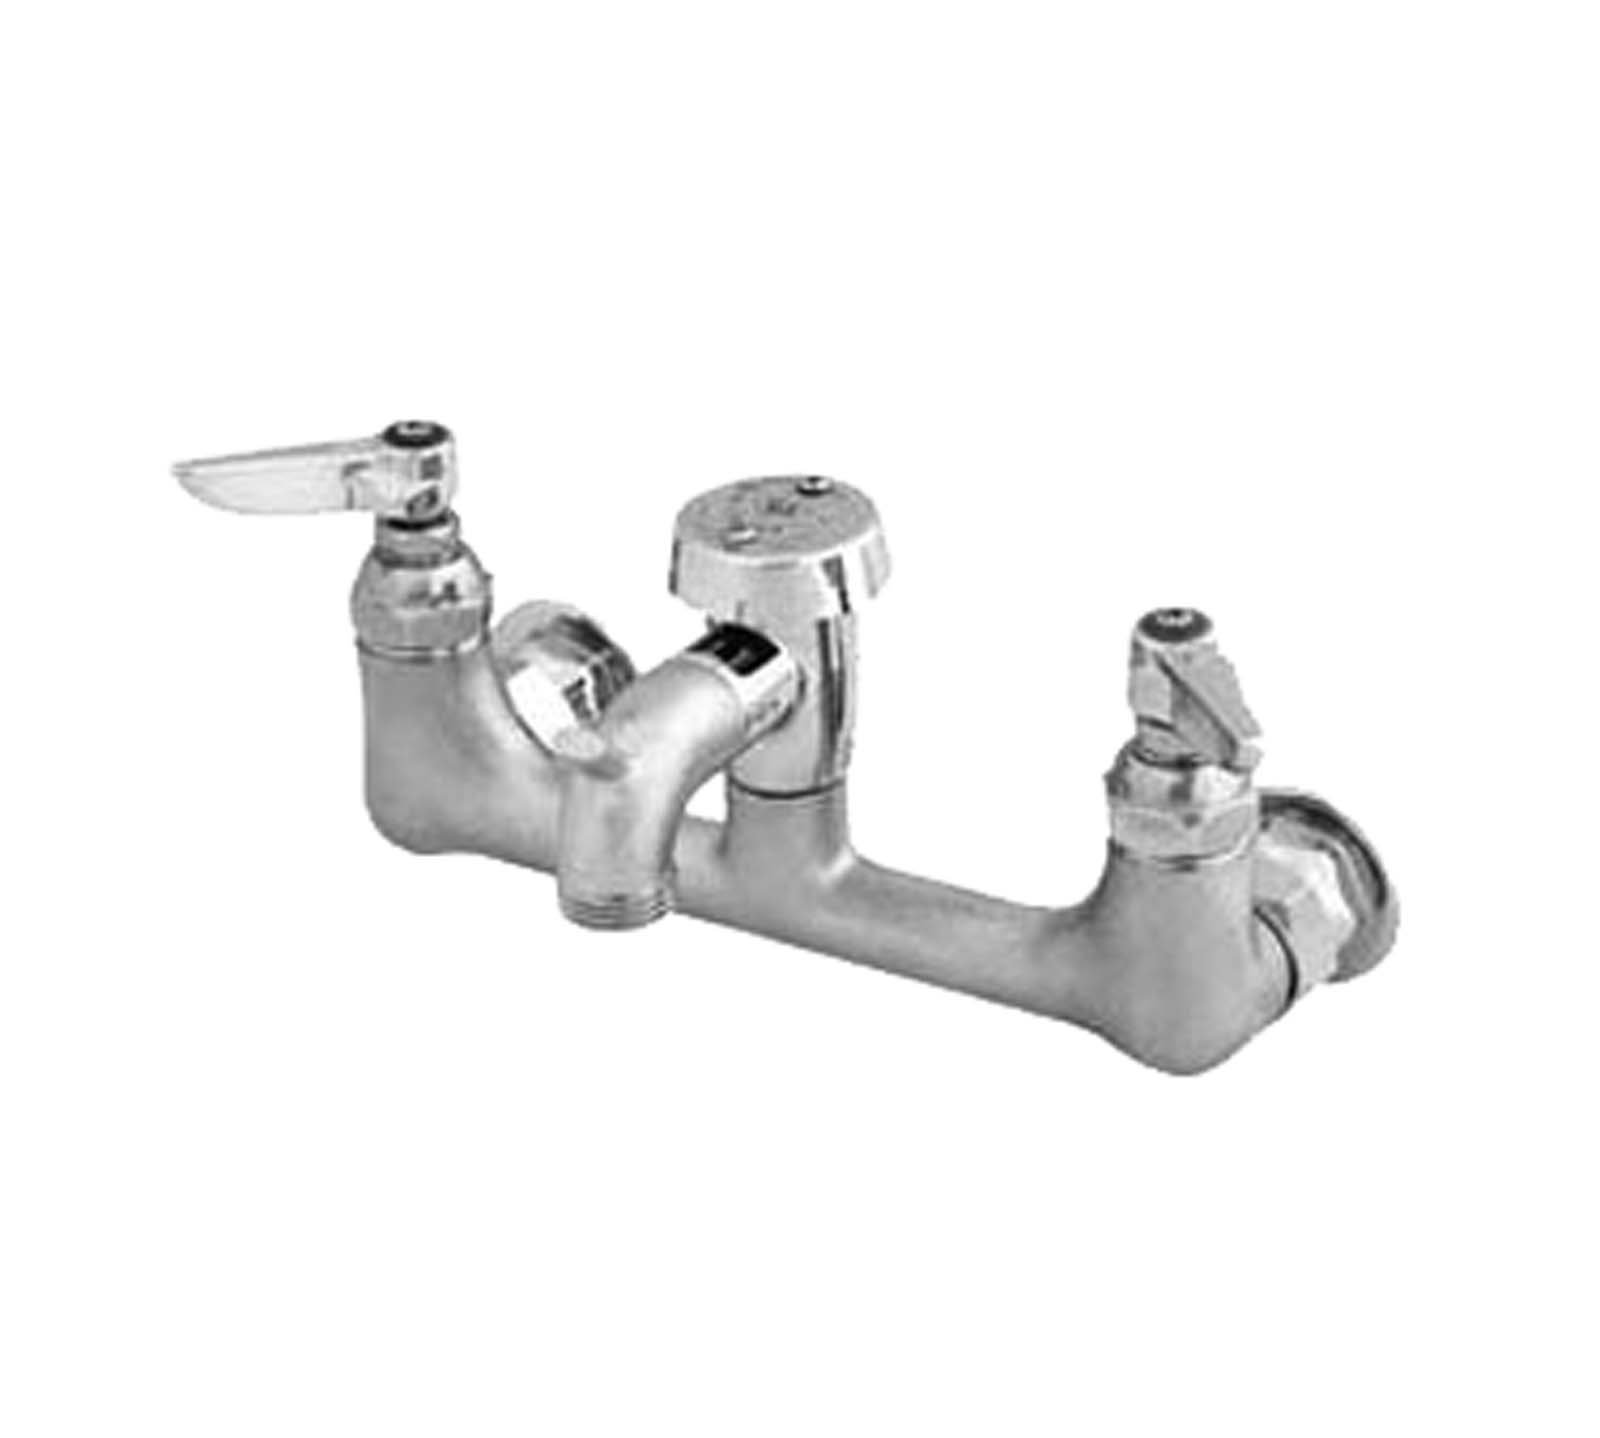 TS Brass B-0674-RGH Service Sink Faucet, Chrome by T&S Brass